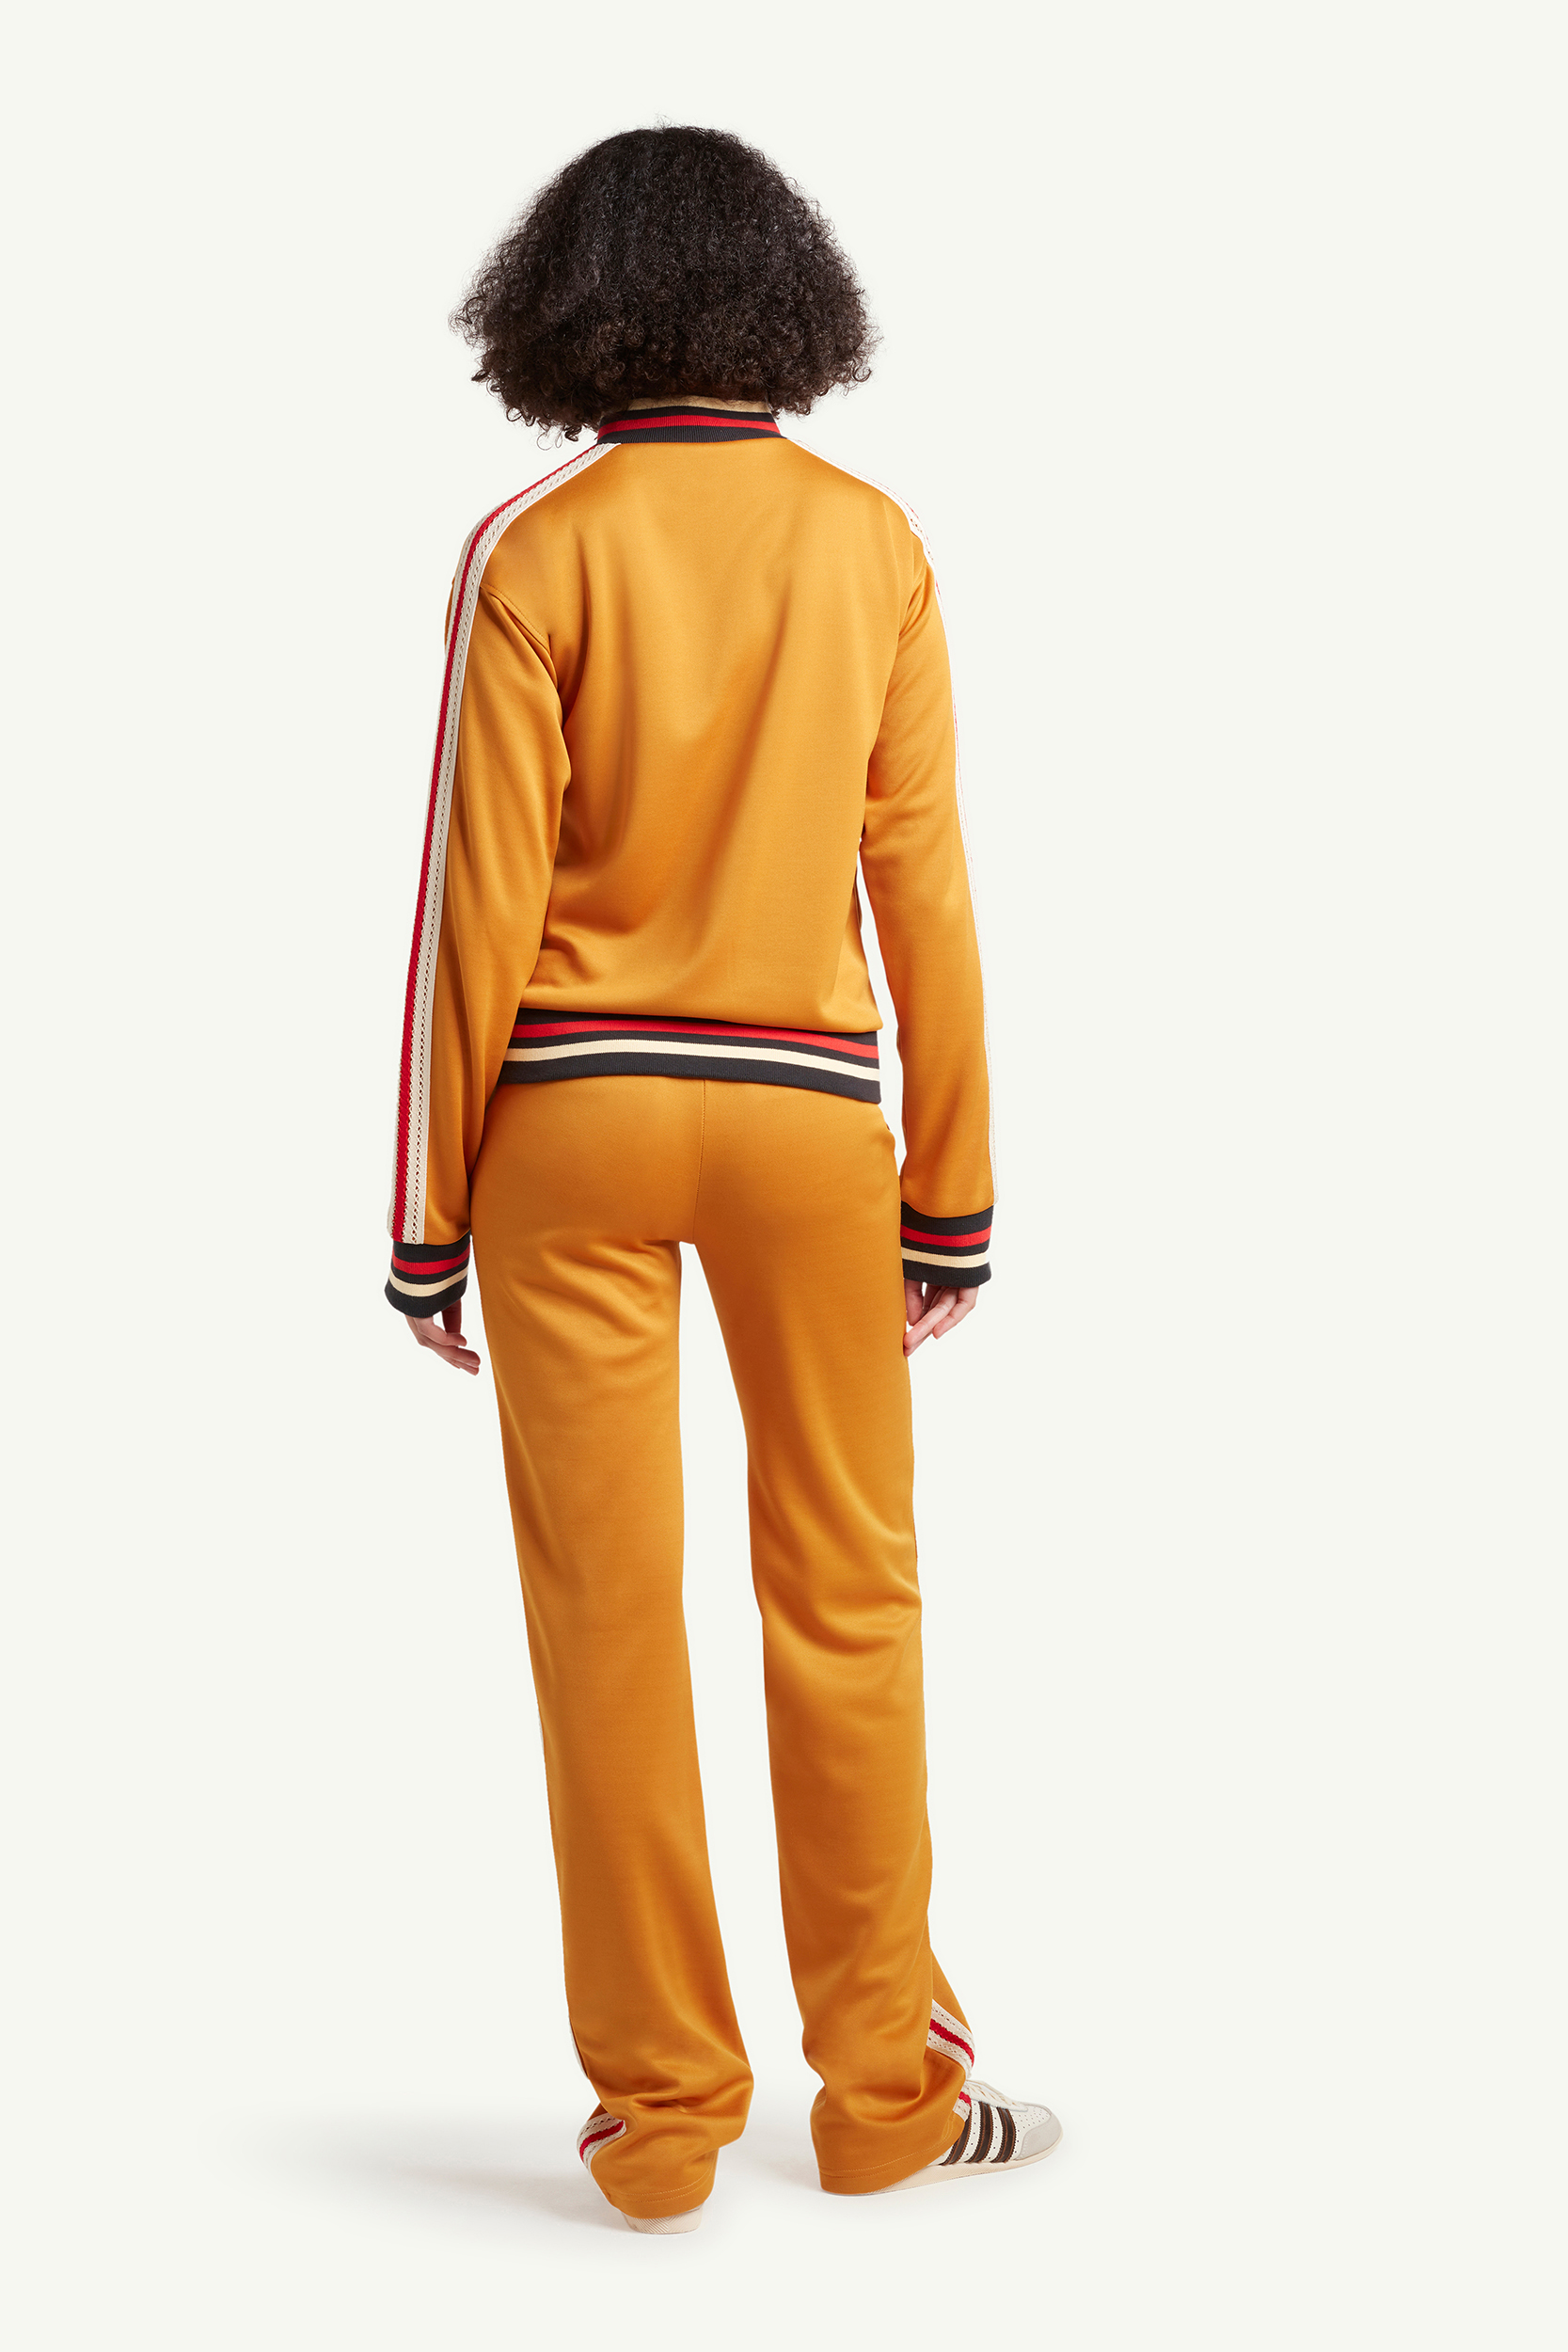 backside shot of womenswear model wearing mustard yellow Wales Bonner tracksuit with red and blue line detailing